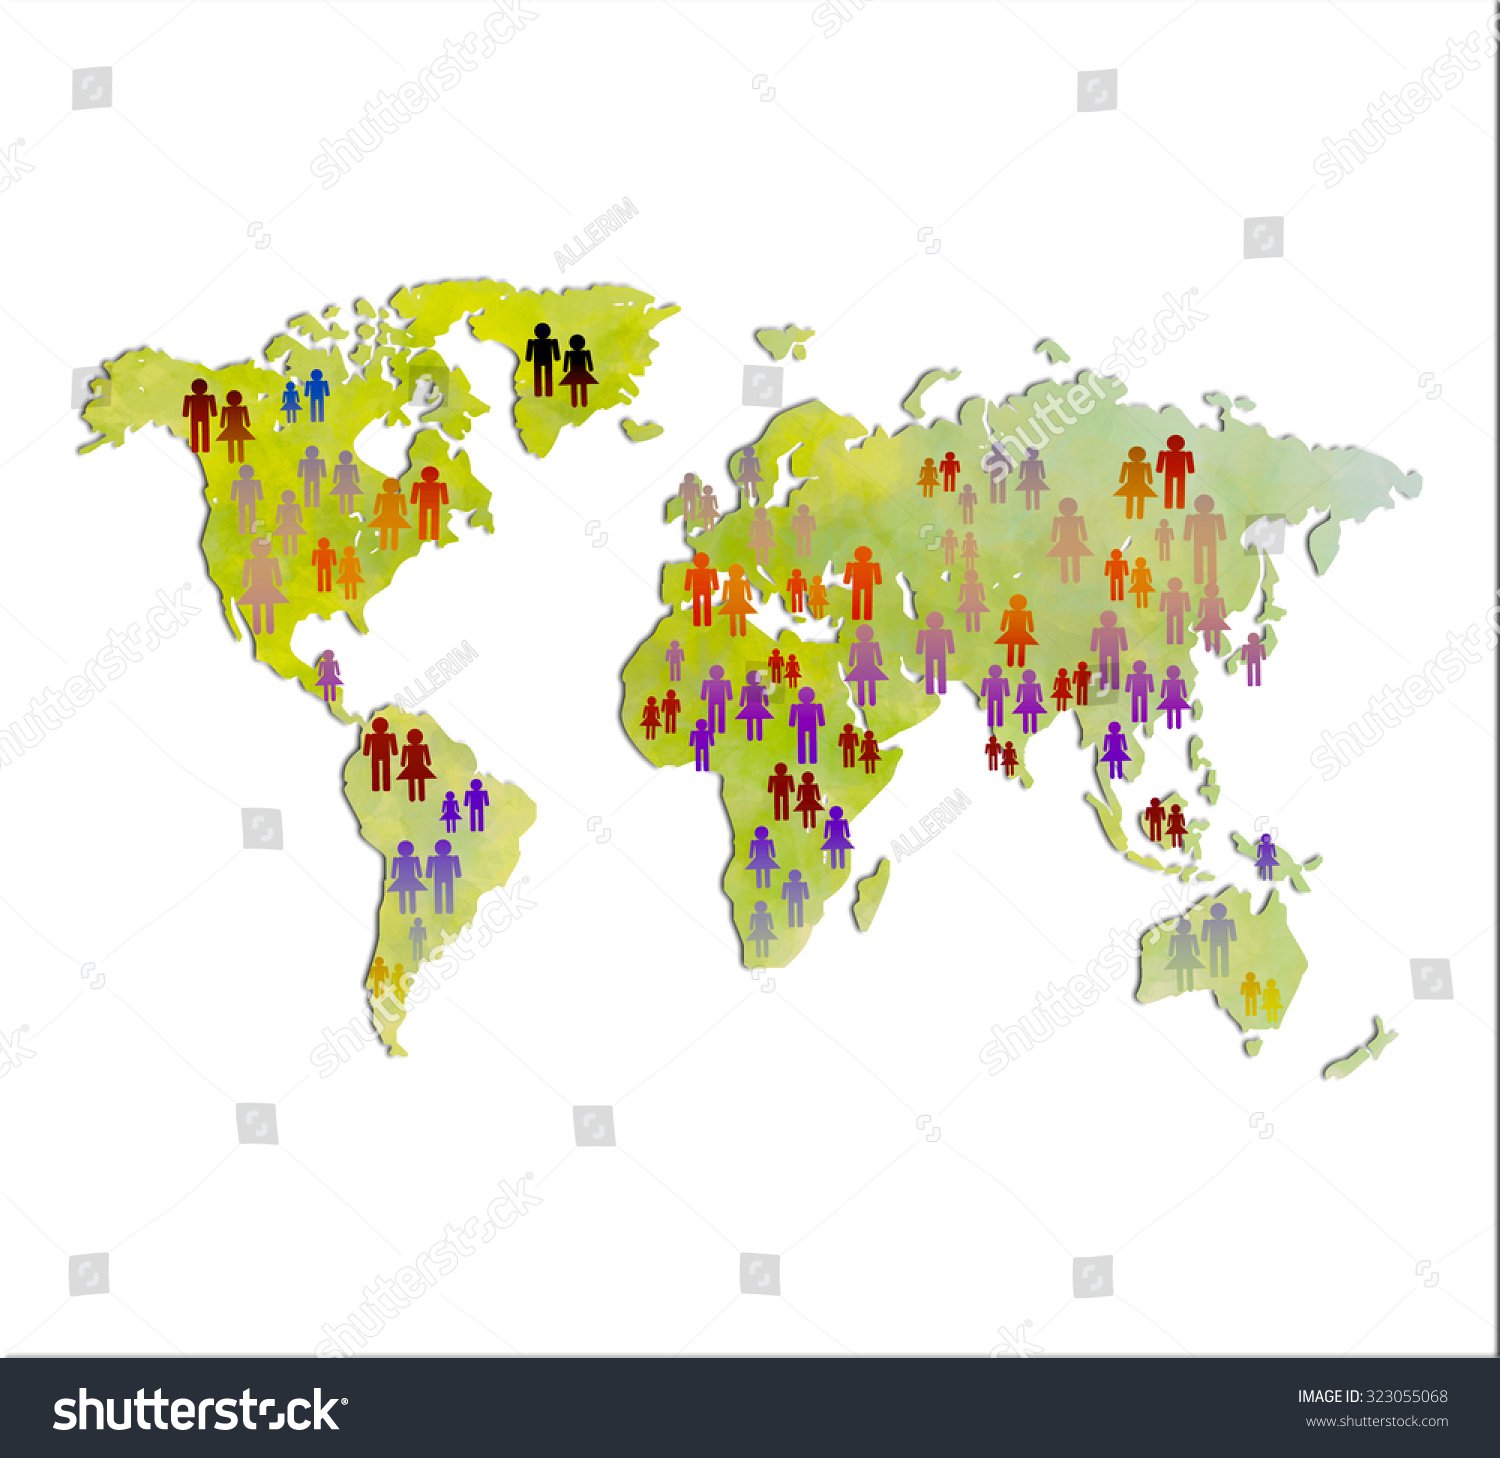 World Map Peoples Icons World Population Stock Illustration